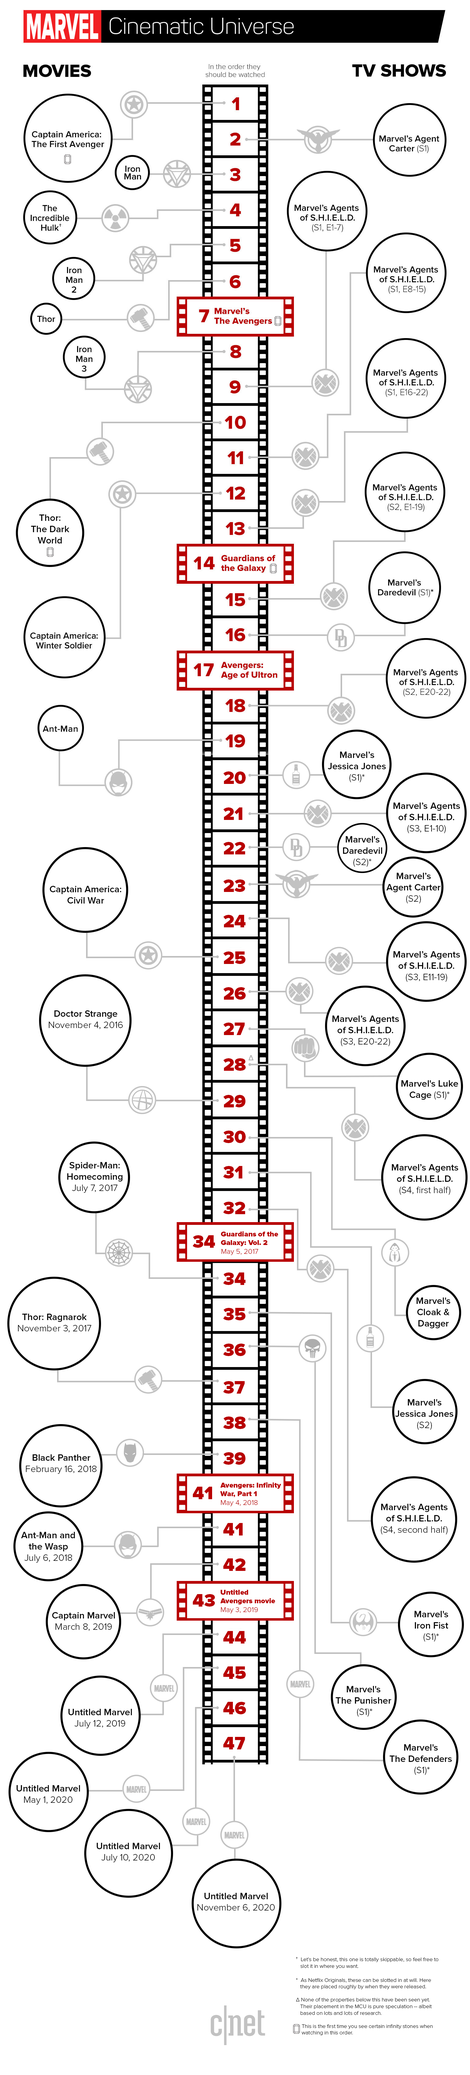 Infographic of order to watch all movies and television shows in Marvel Cinematic Universe